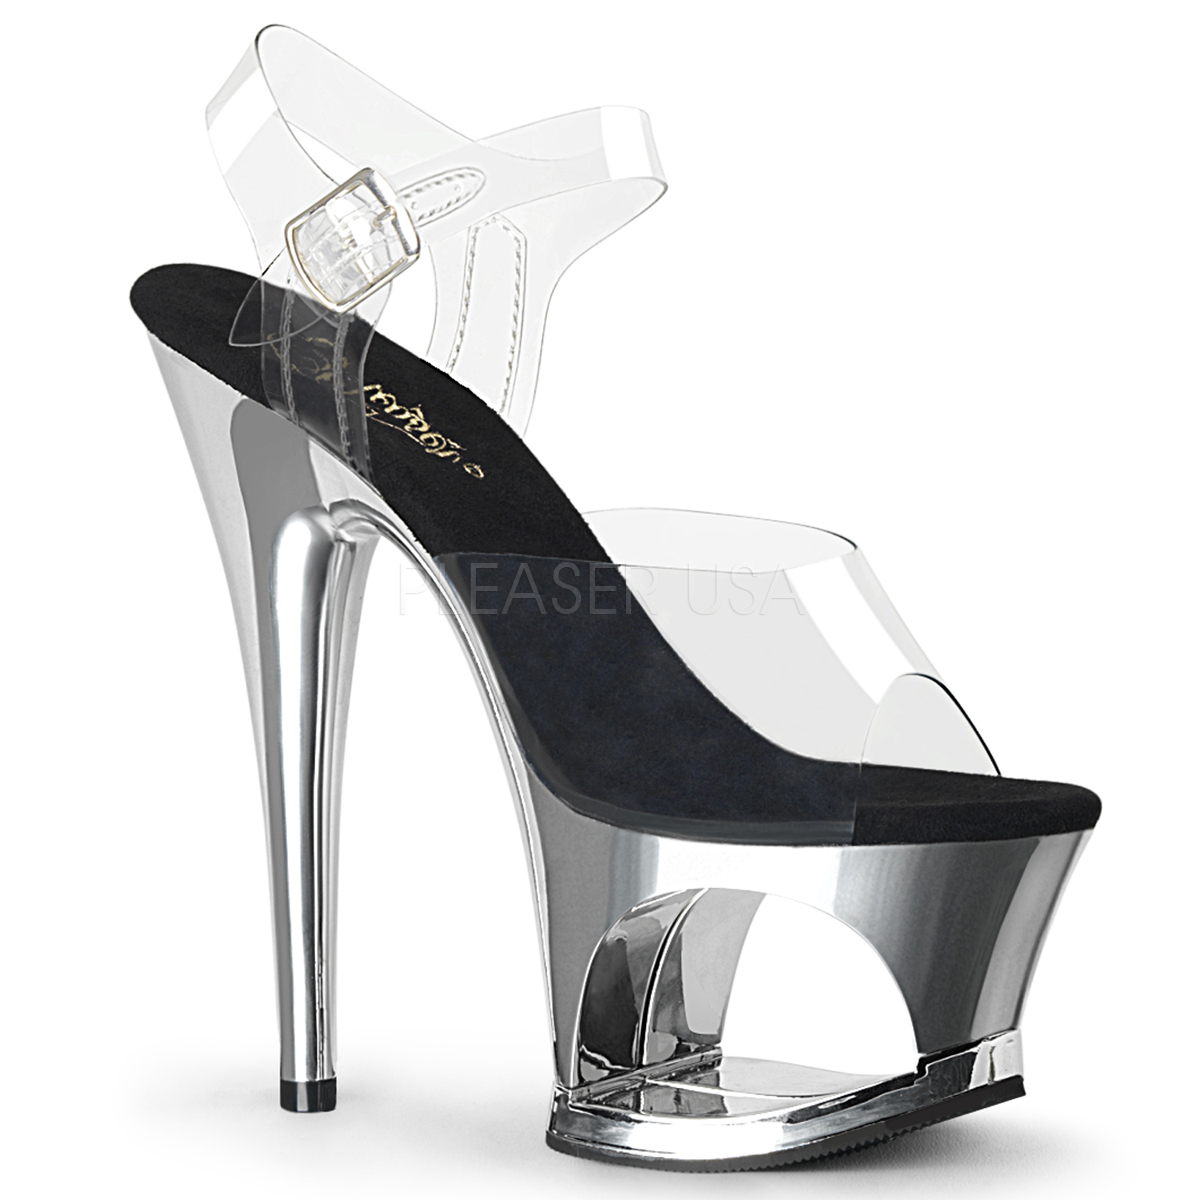 Pleaser MOON-708 Economical, stylish, and eye-catching shoes